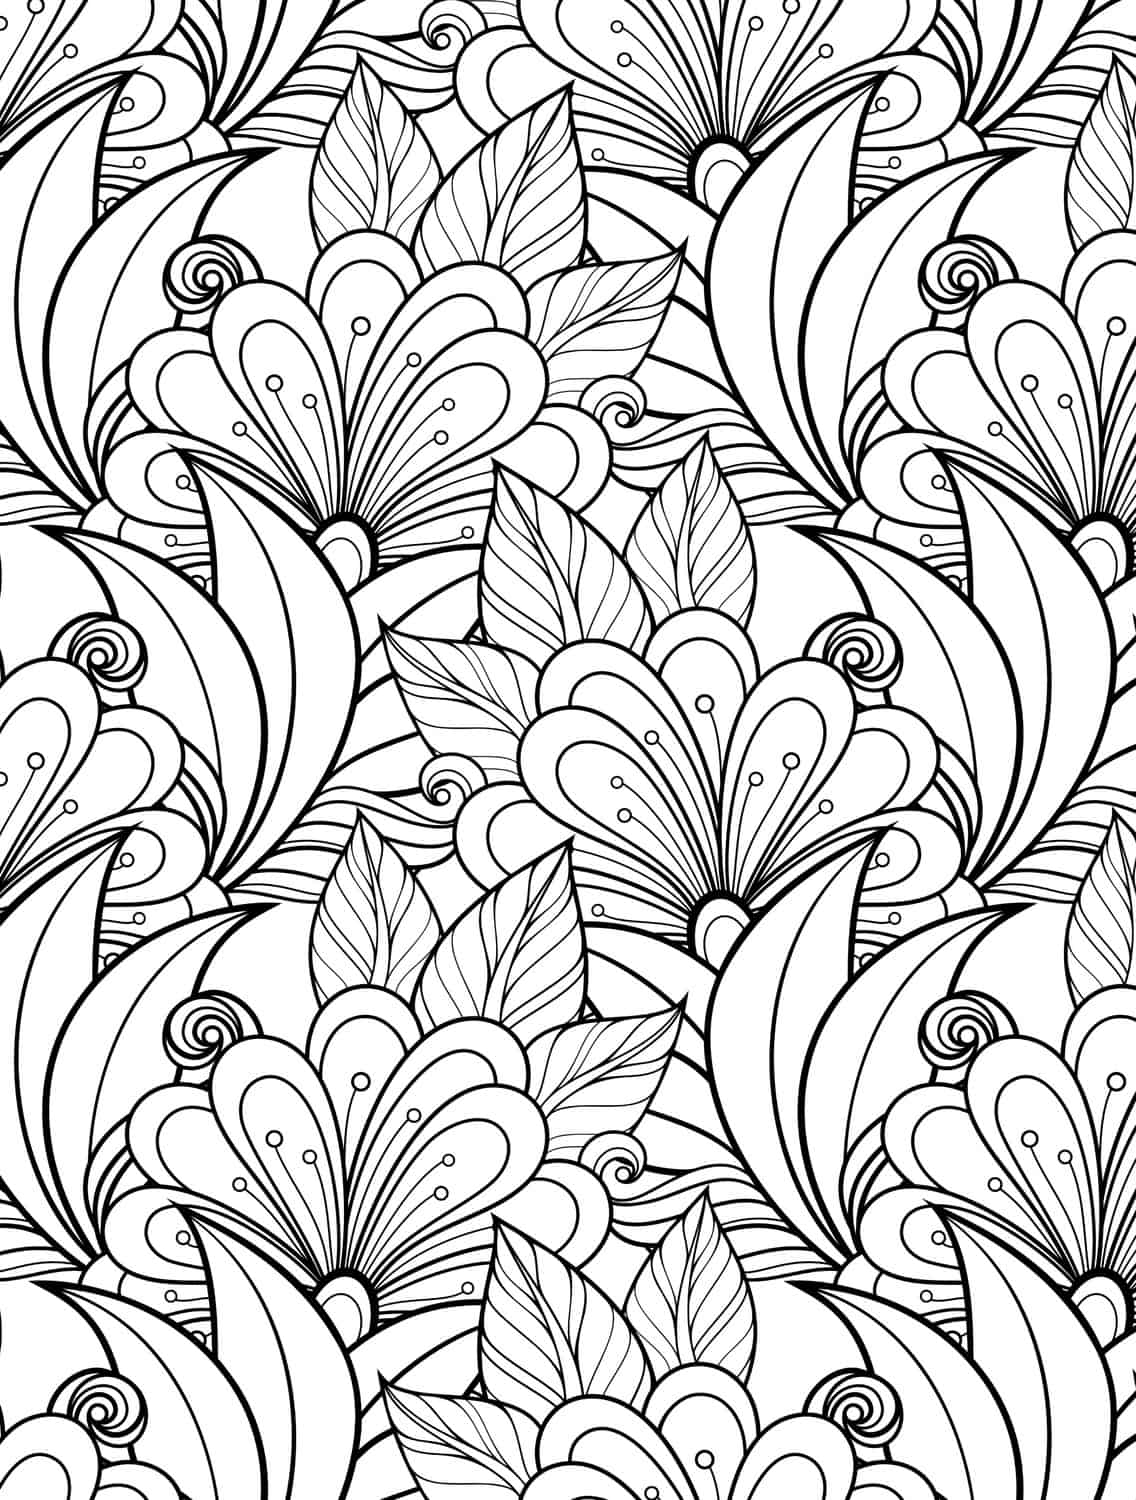 24 More Free Printable Adult Coloring Pages - Page 7 of 25 - Nerdy ...